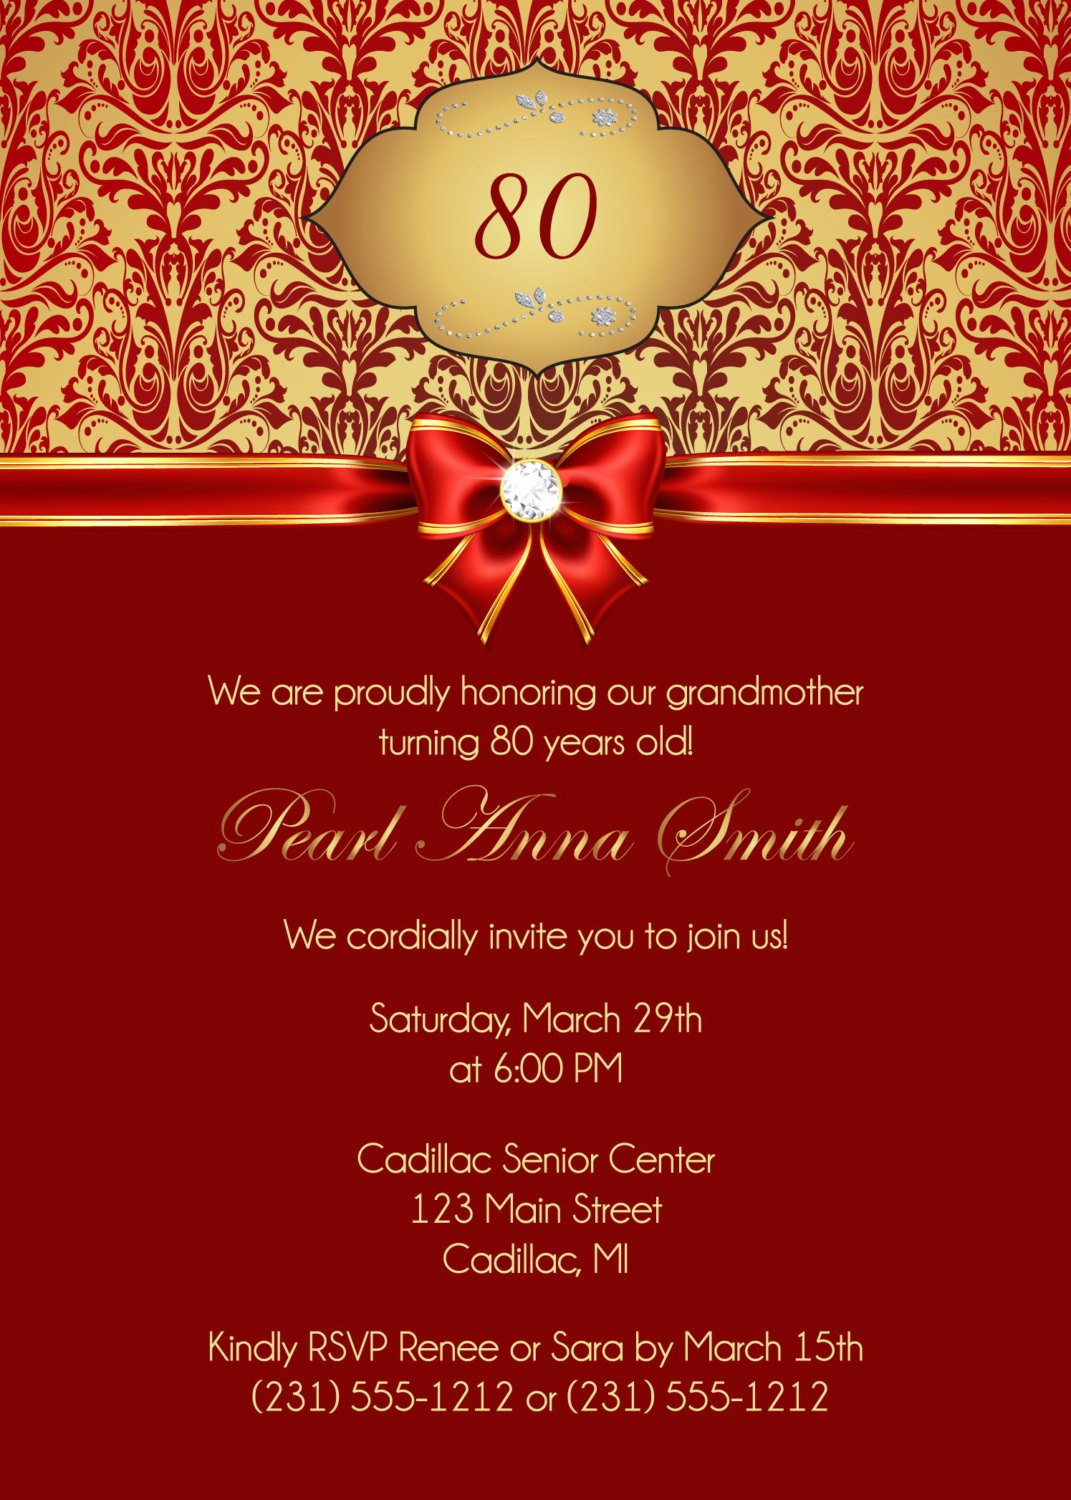 80th Birthday Party Invitations Beautiful 80th Birthday Invitation Adult Black and Gold Damask 80th